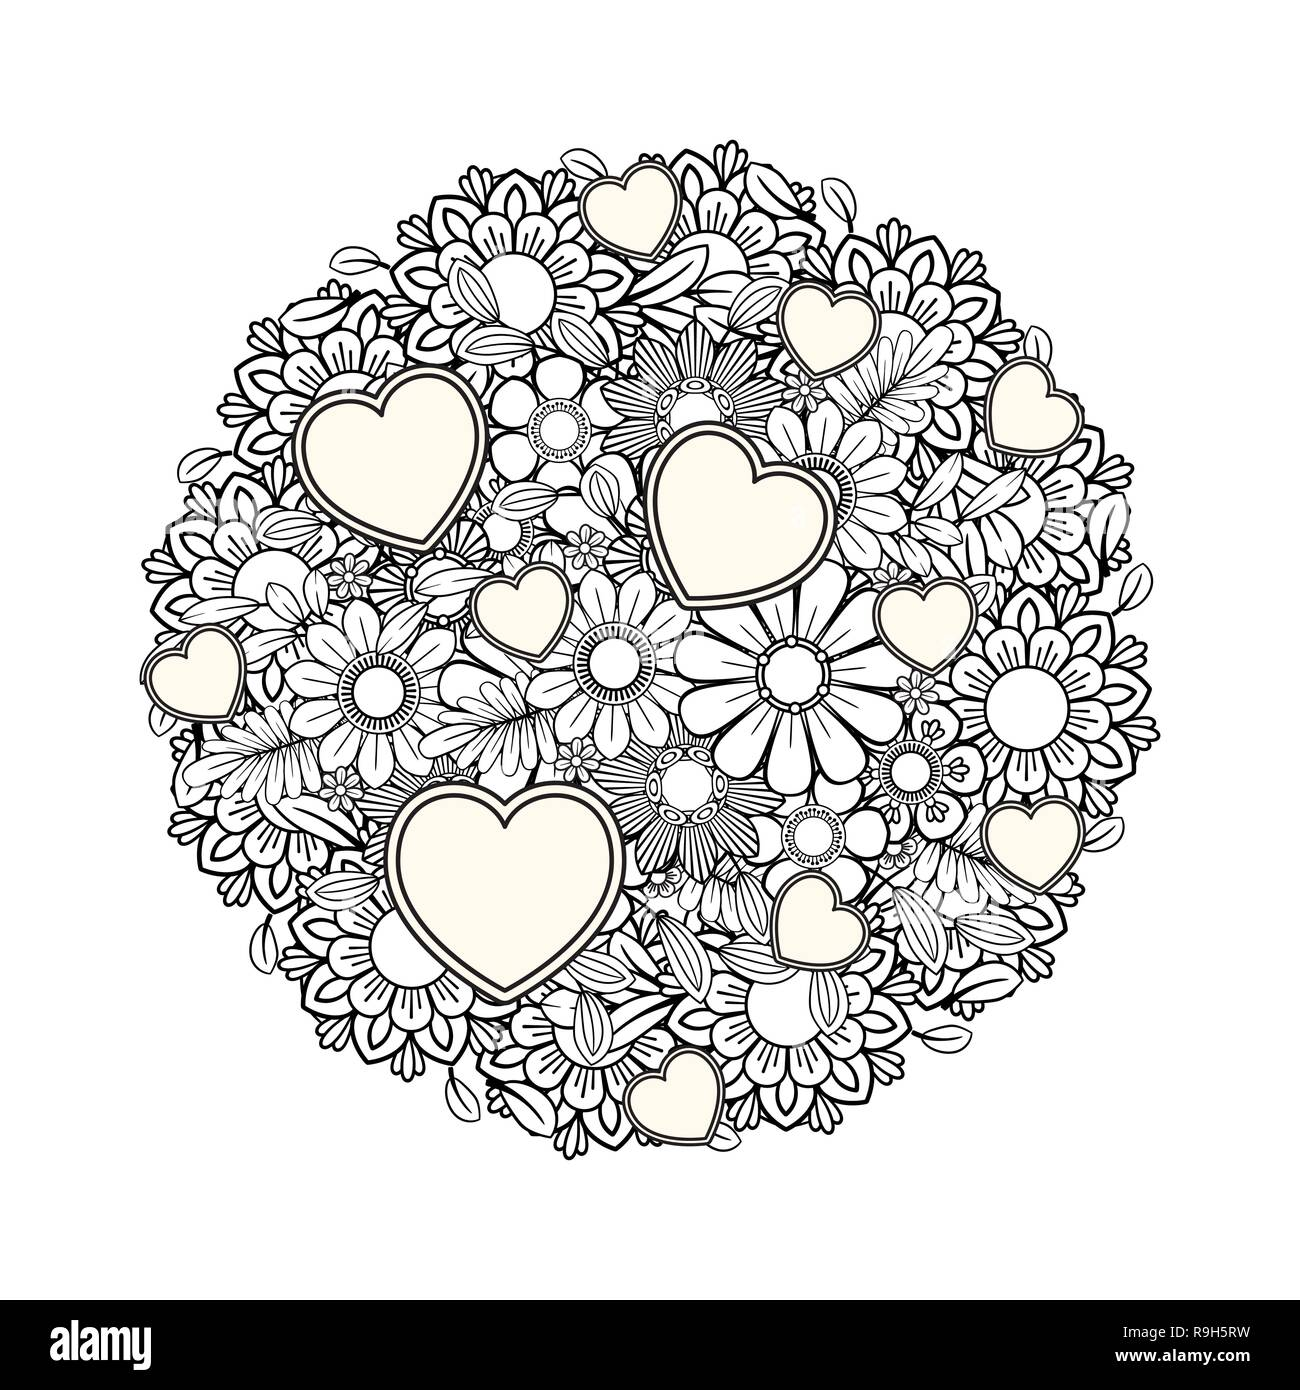 Adult Coloring Page Stock Photos & Adult Coloring Page Stock ...